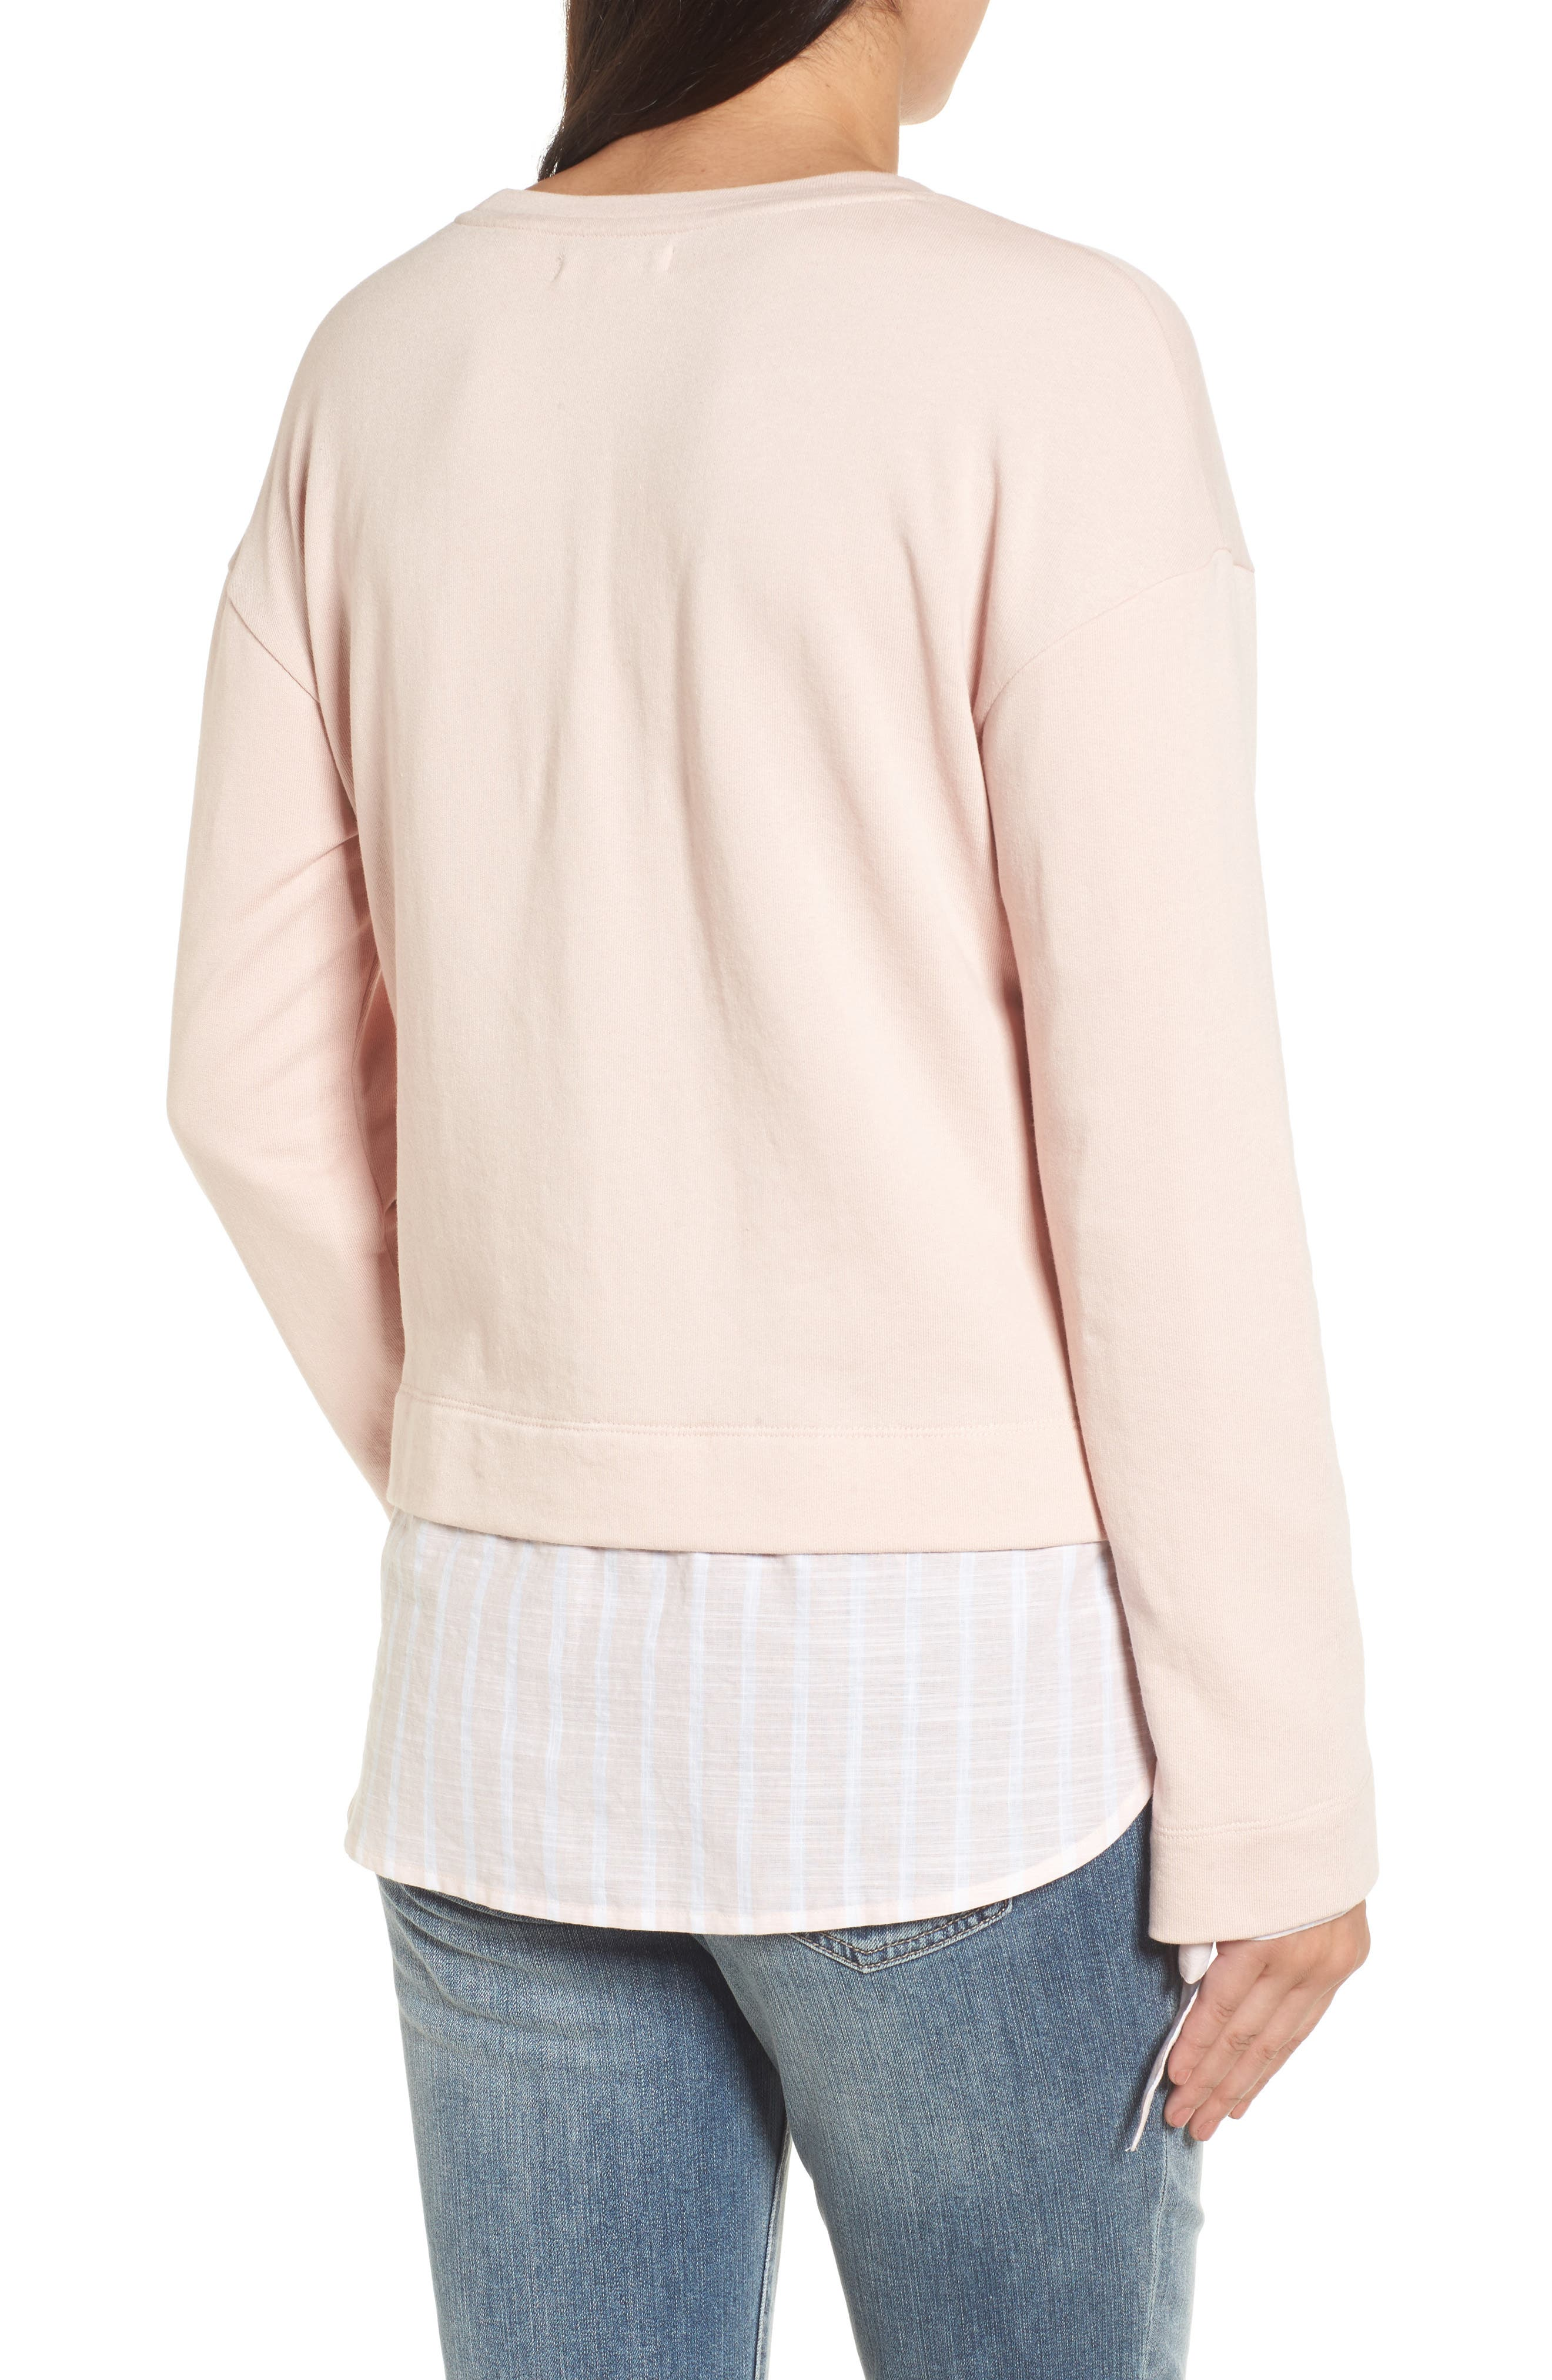 Woven Trim Layered Sweatshirt,                             Alternate thumbnail 2, color,                             Pink- Stripe Colorblock